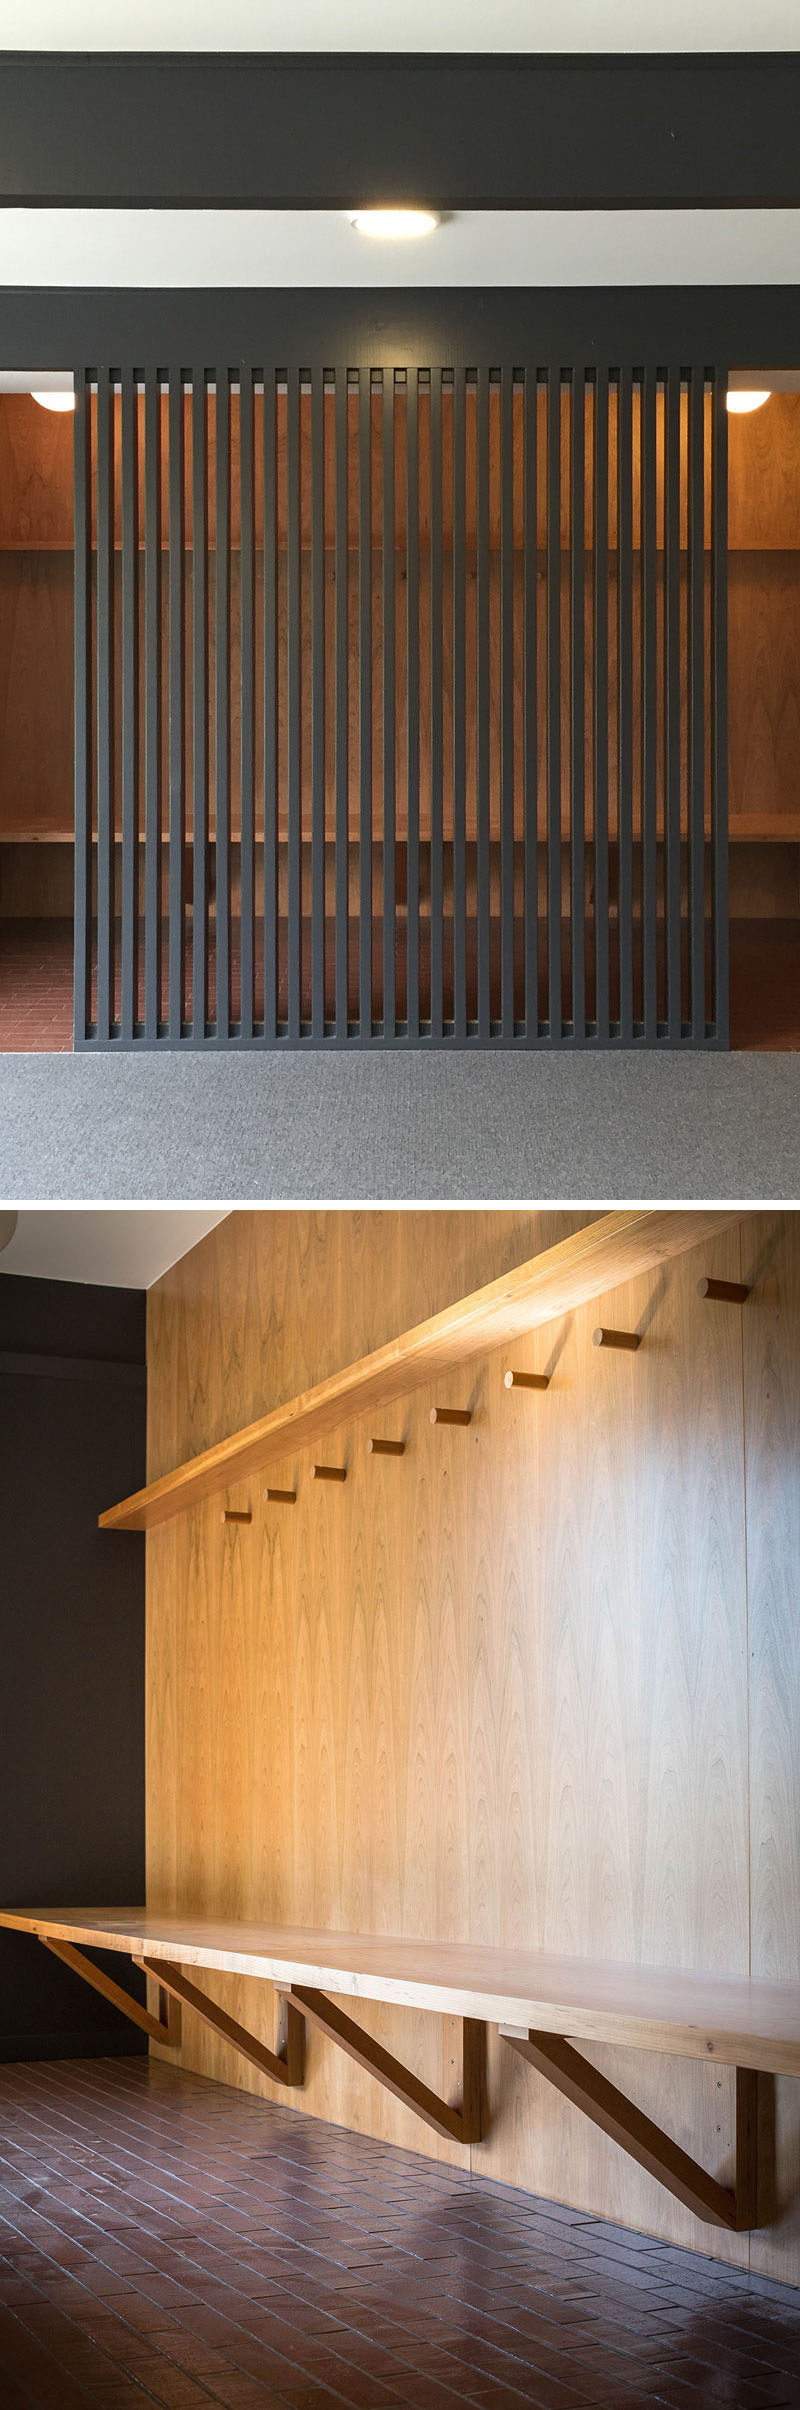 This modern mudroom has a wood bench, hooks and a screen that allows light through. #Mudroom